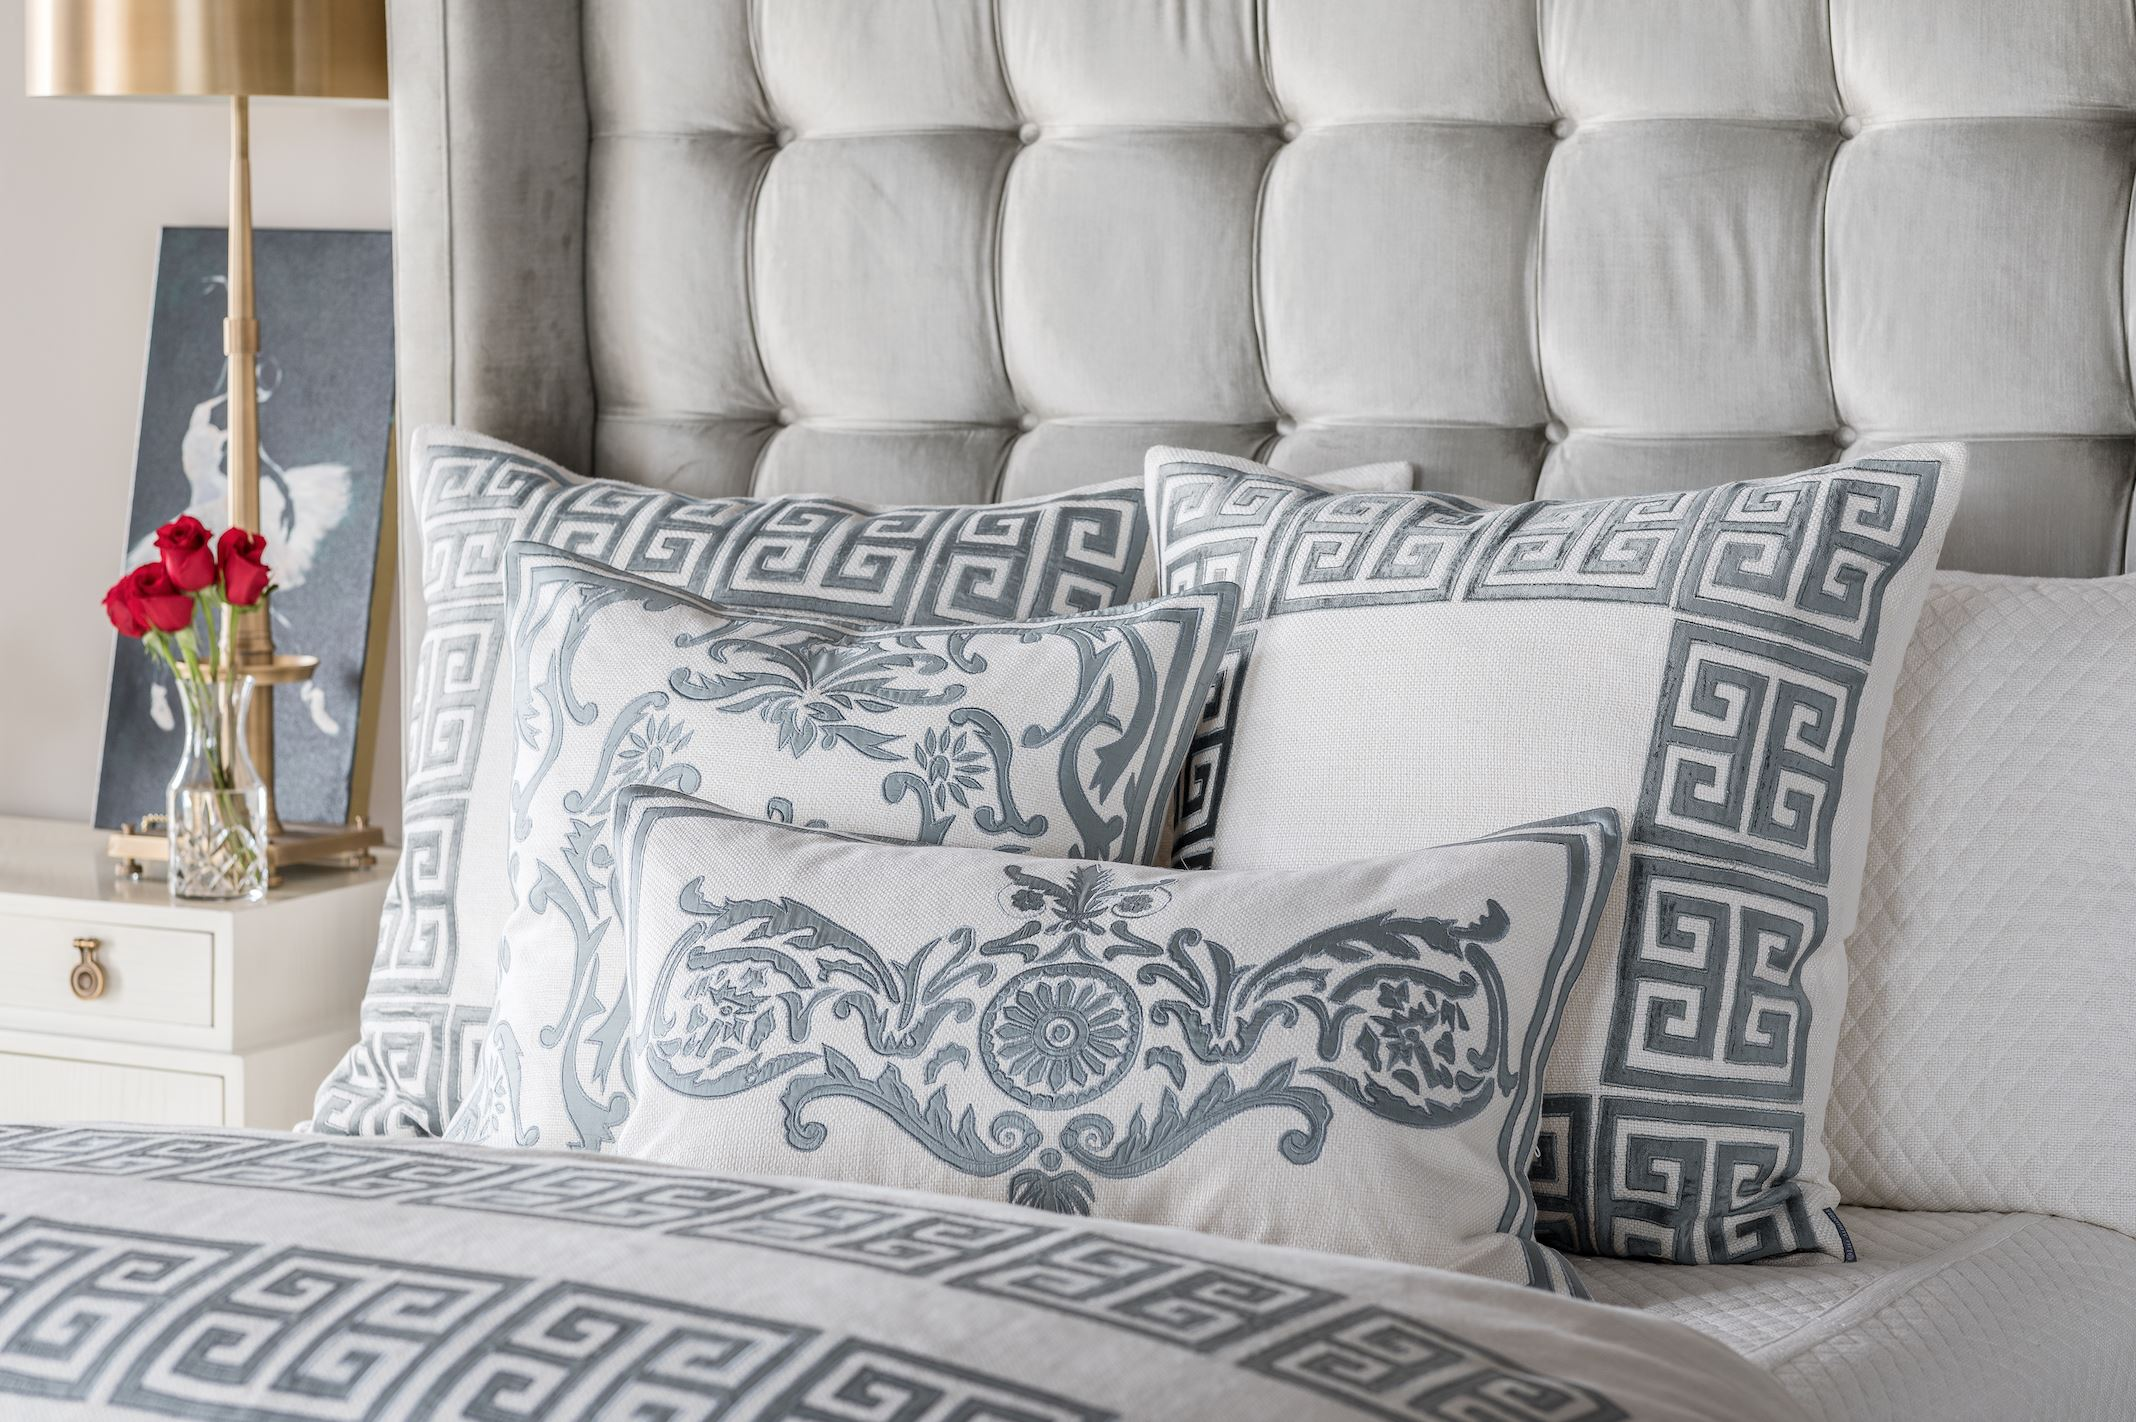 Guy Blue Euro Pillow on Bed - Lili Alessandra at Fig Linens